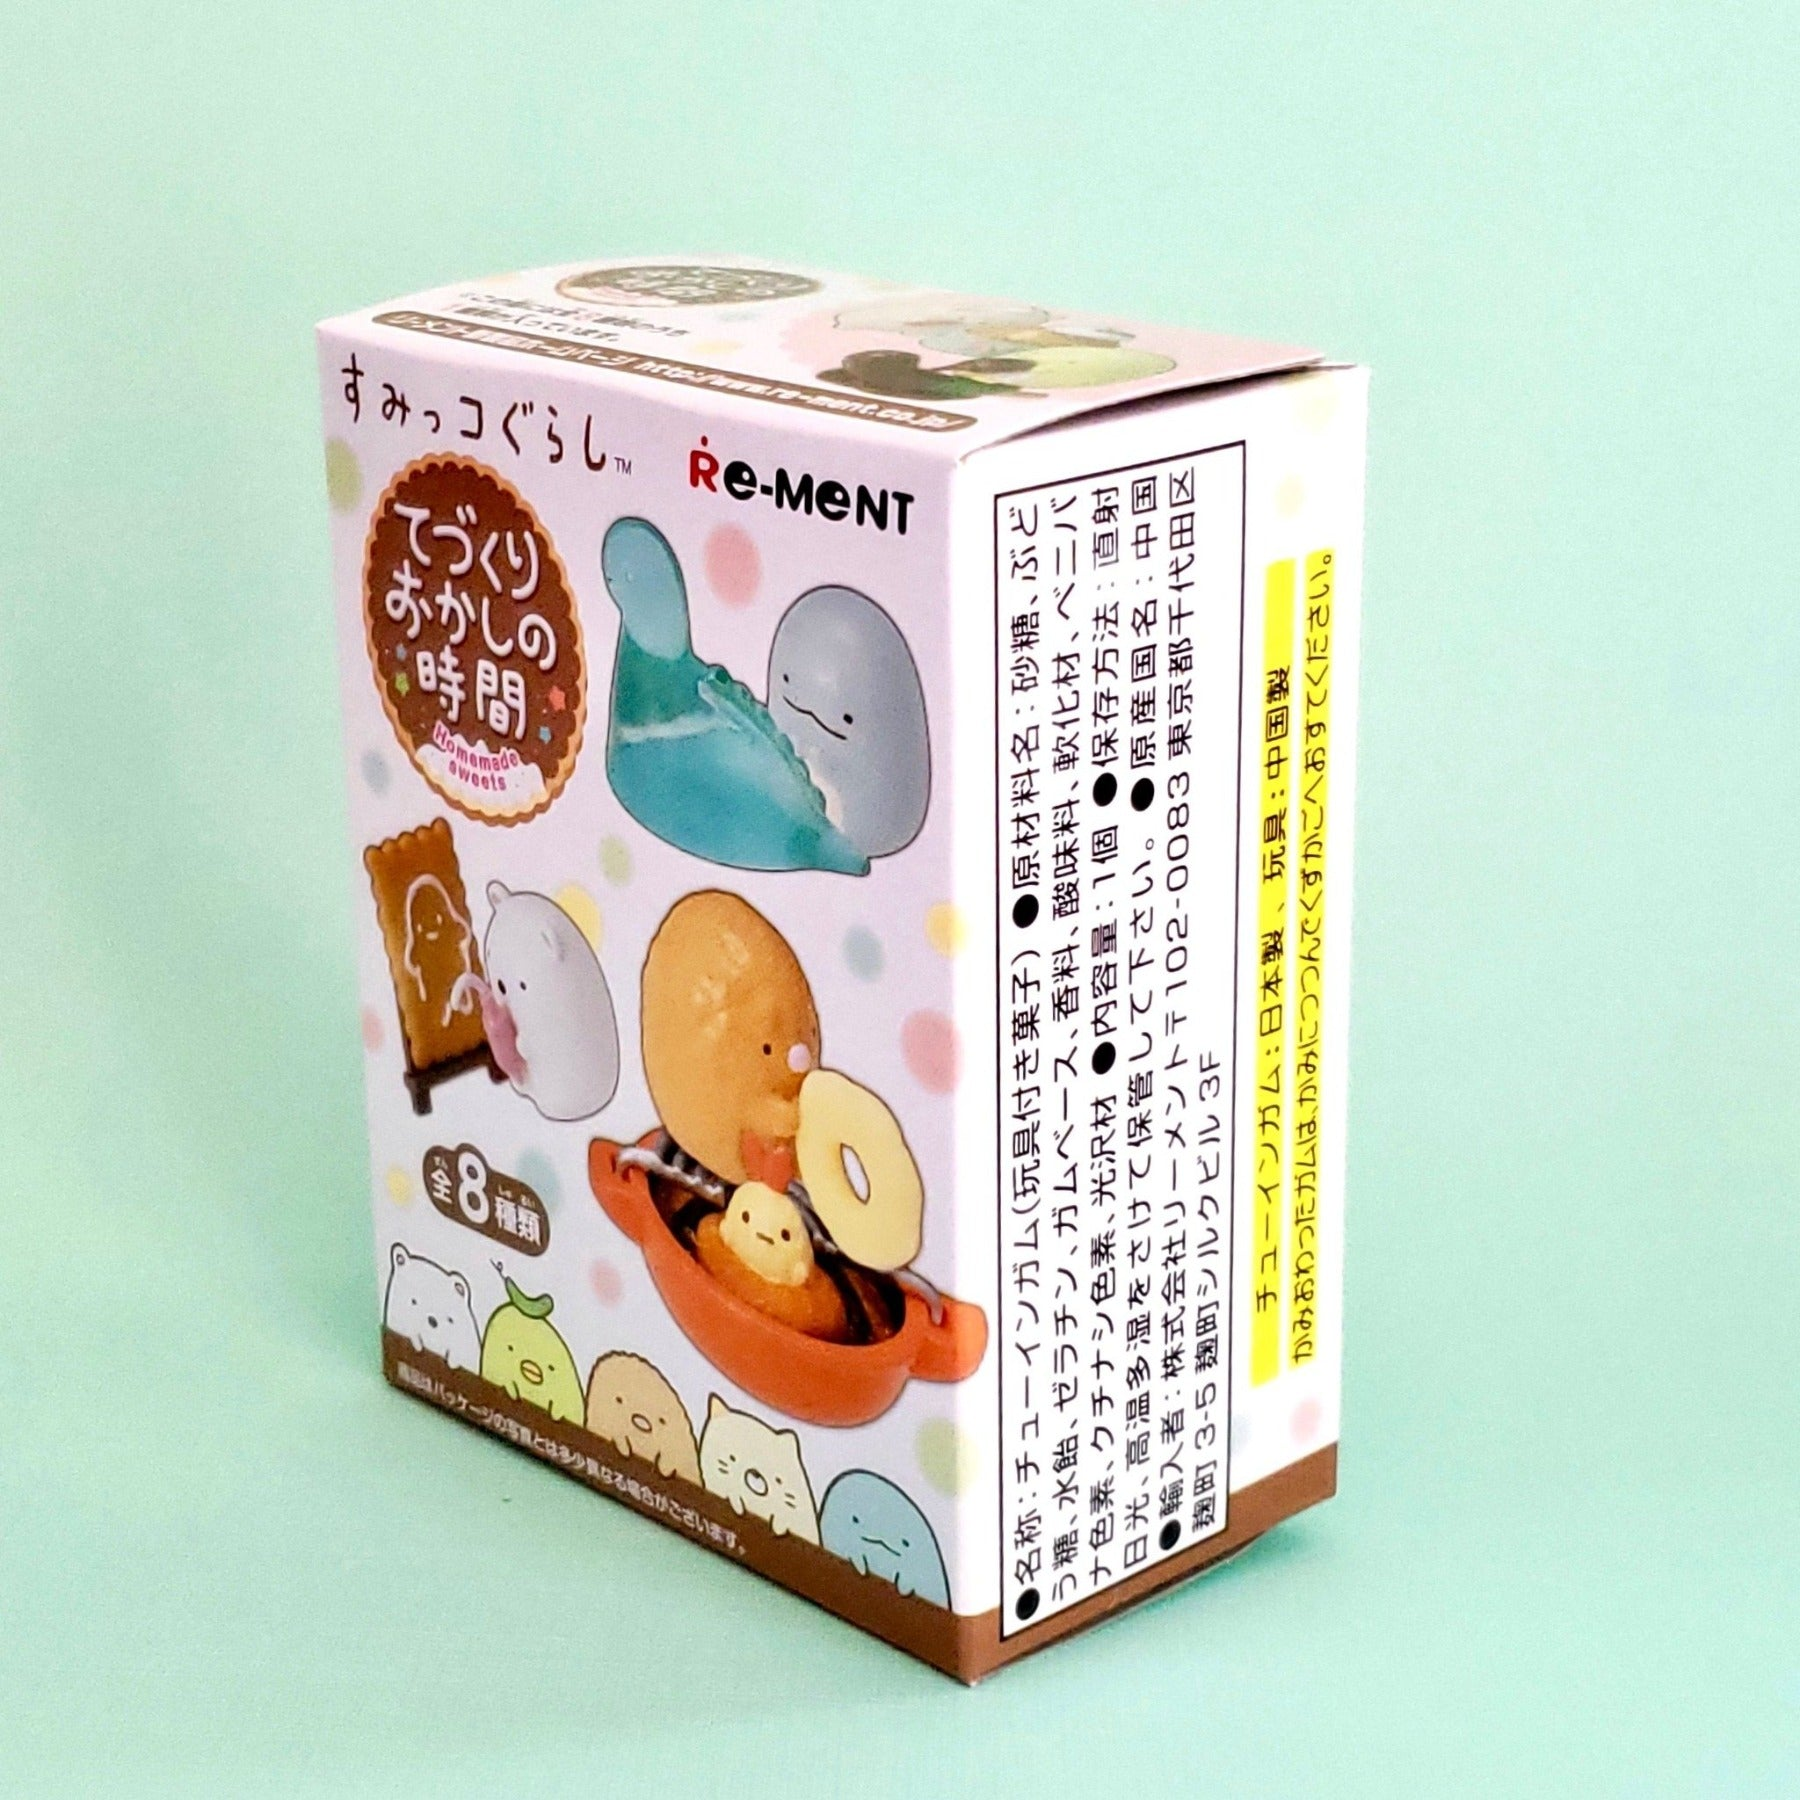 Japanese Re-Ment Sumikko Gurashi Homemade Sweets Blind Box series left side box view